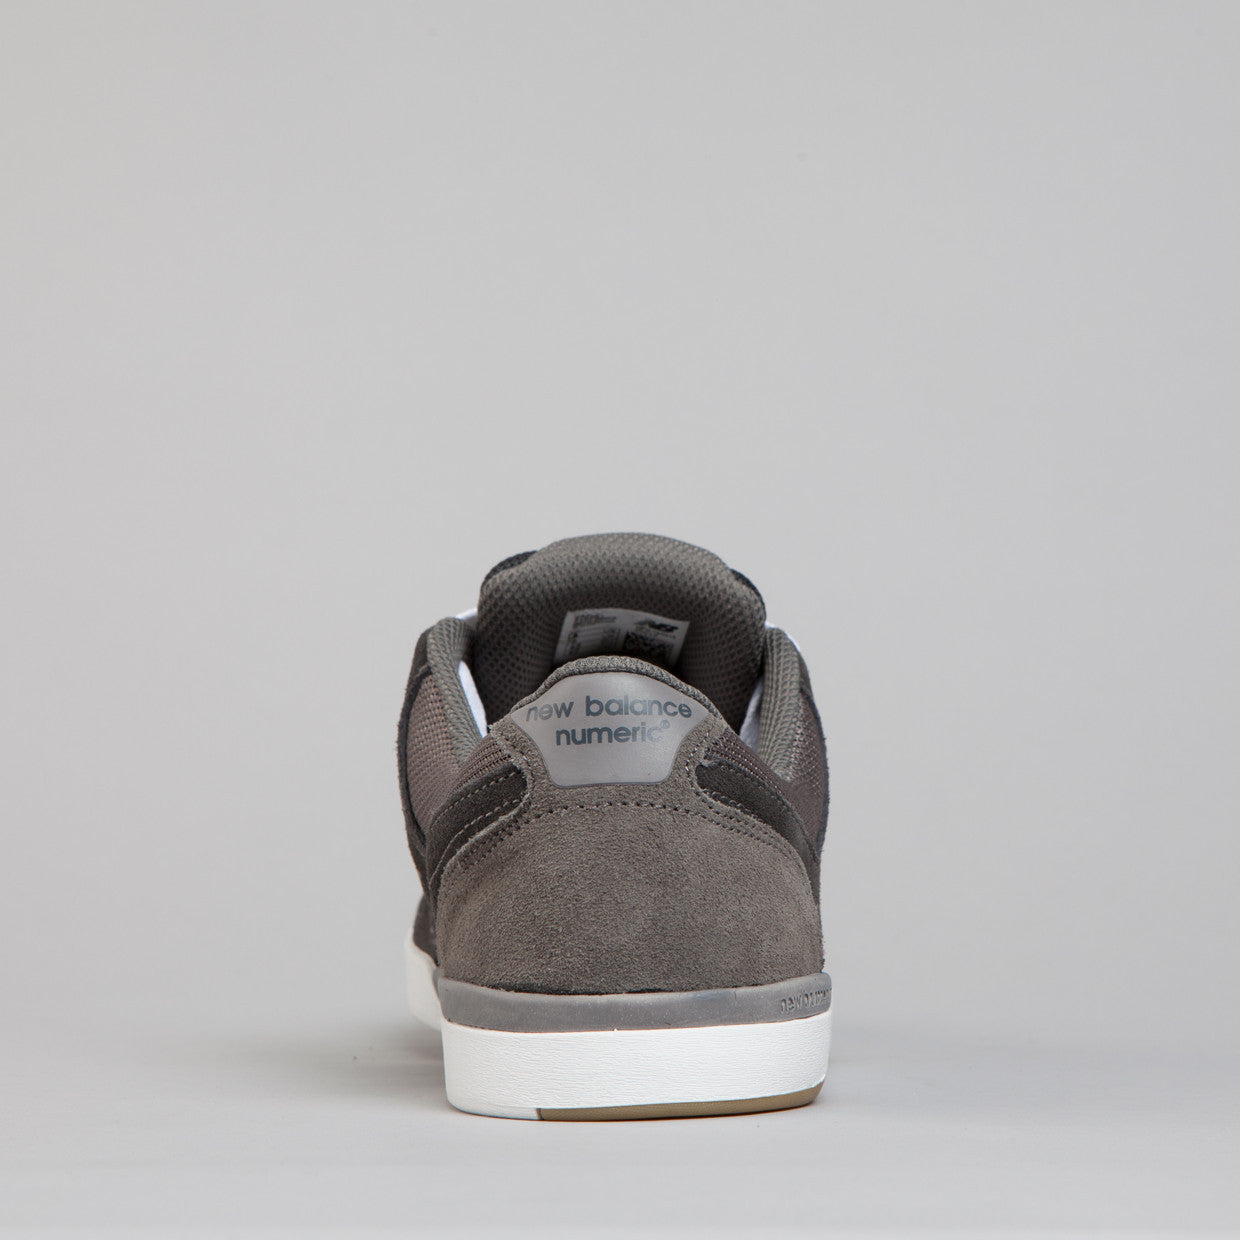 New Balance Numeric Stratford 479 Pirate Black / Micro Grey